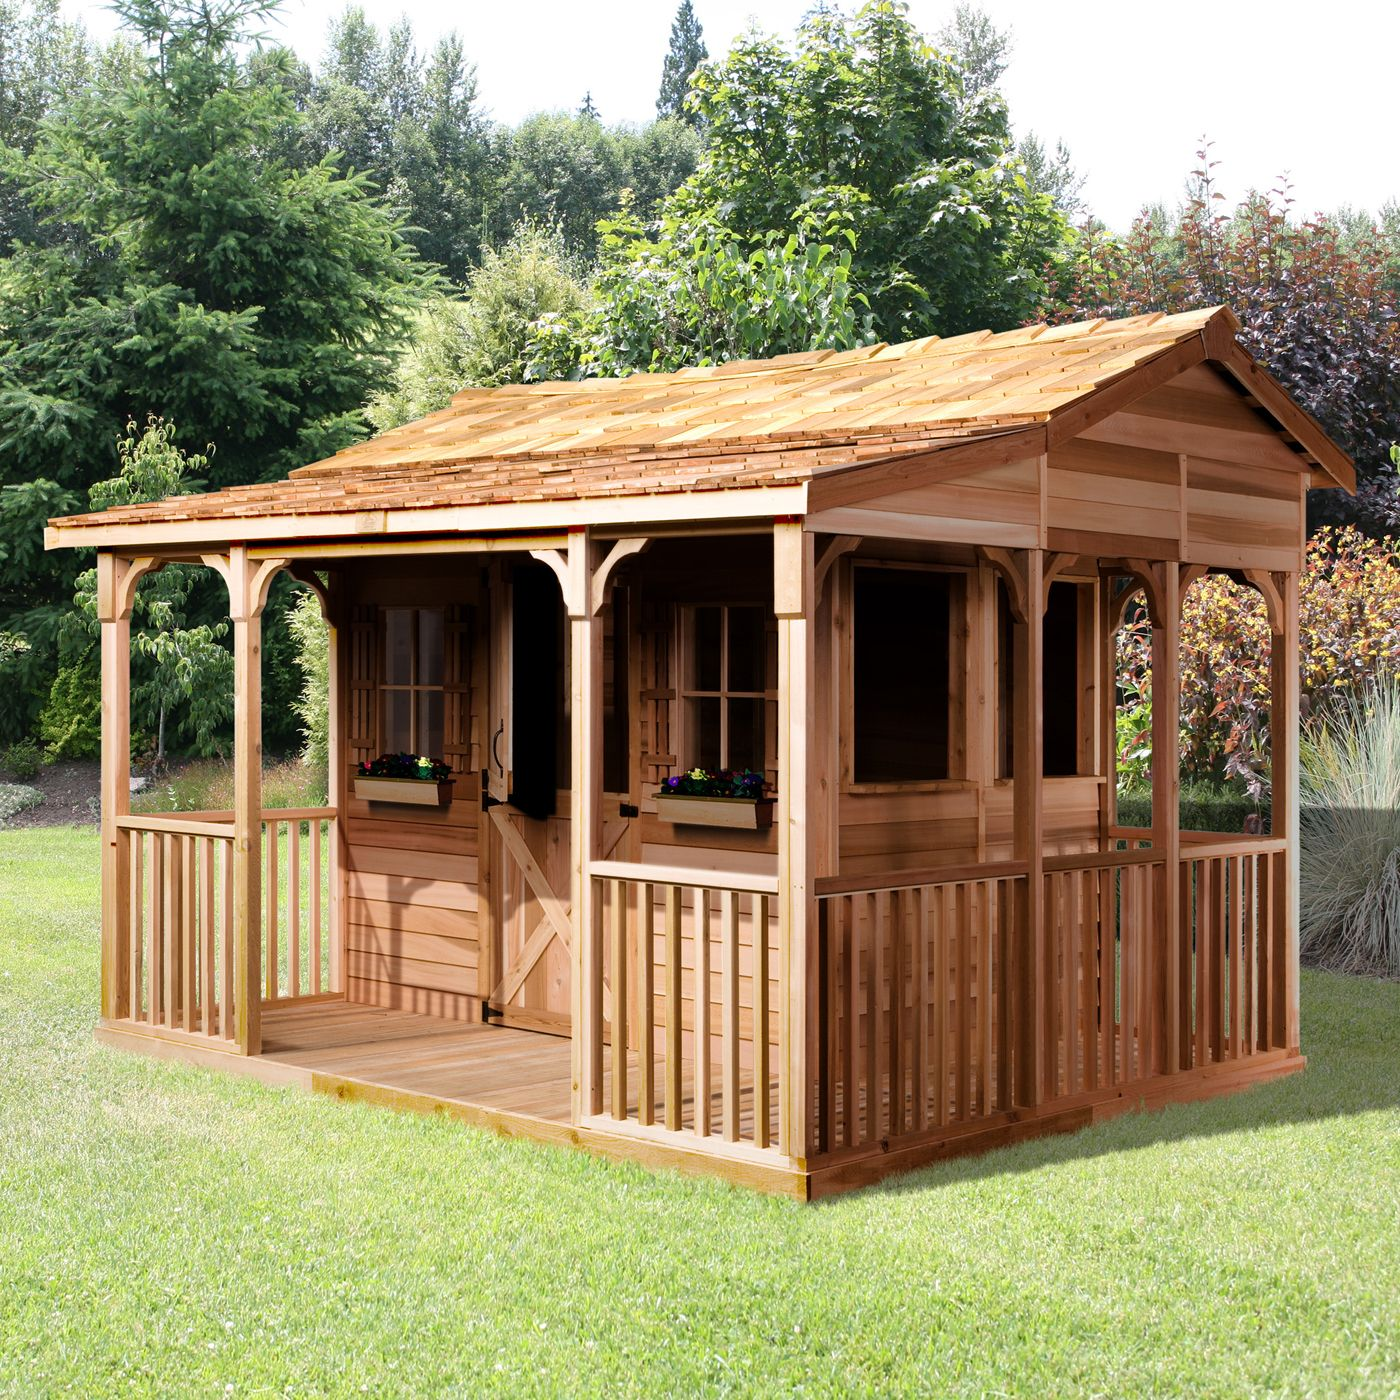 Cedarshed CookHouse 12ft x 10ft Cedar Storage Shed